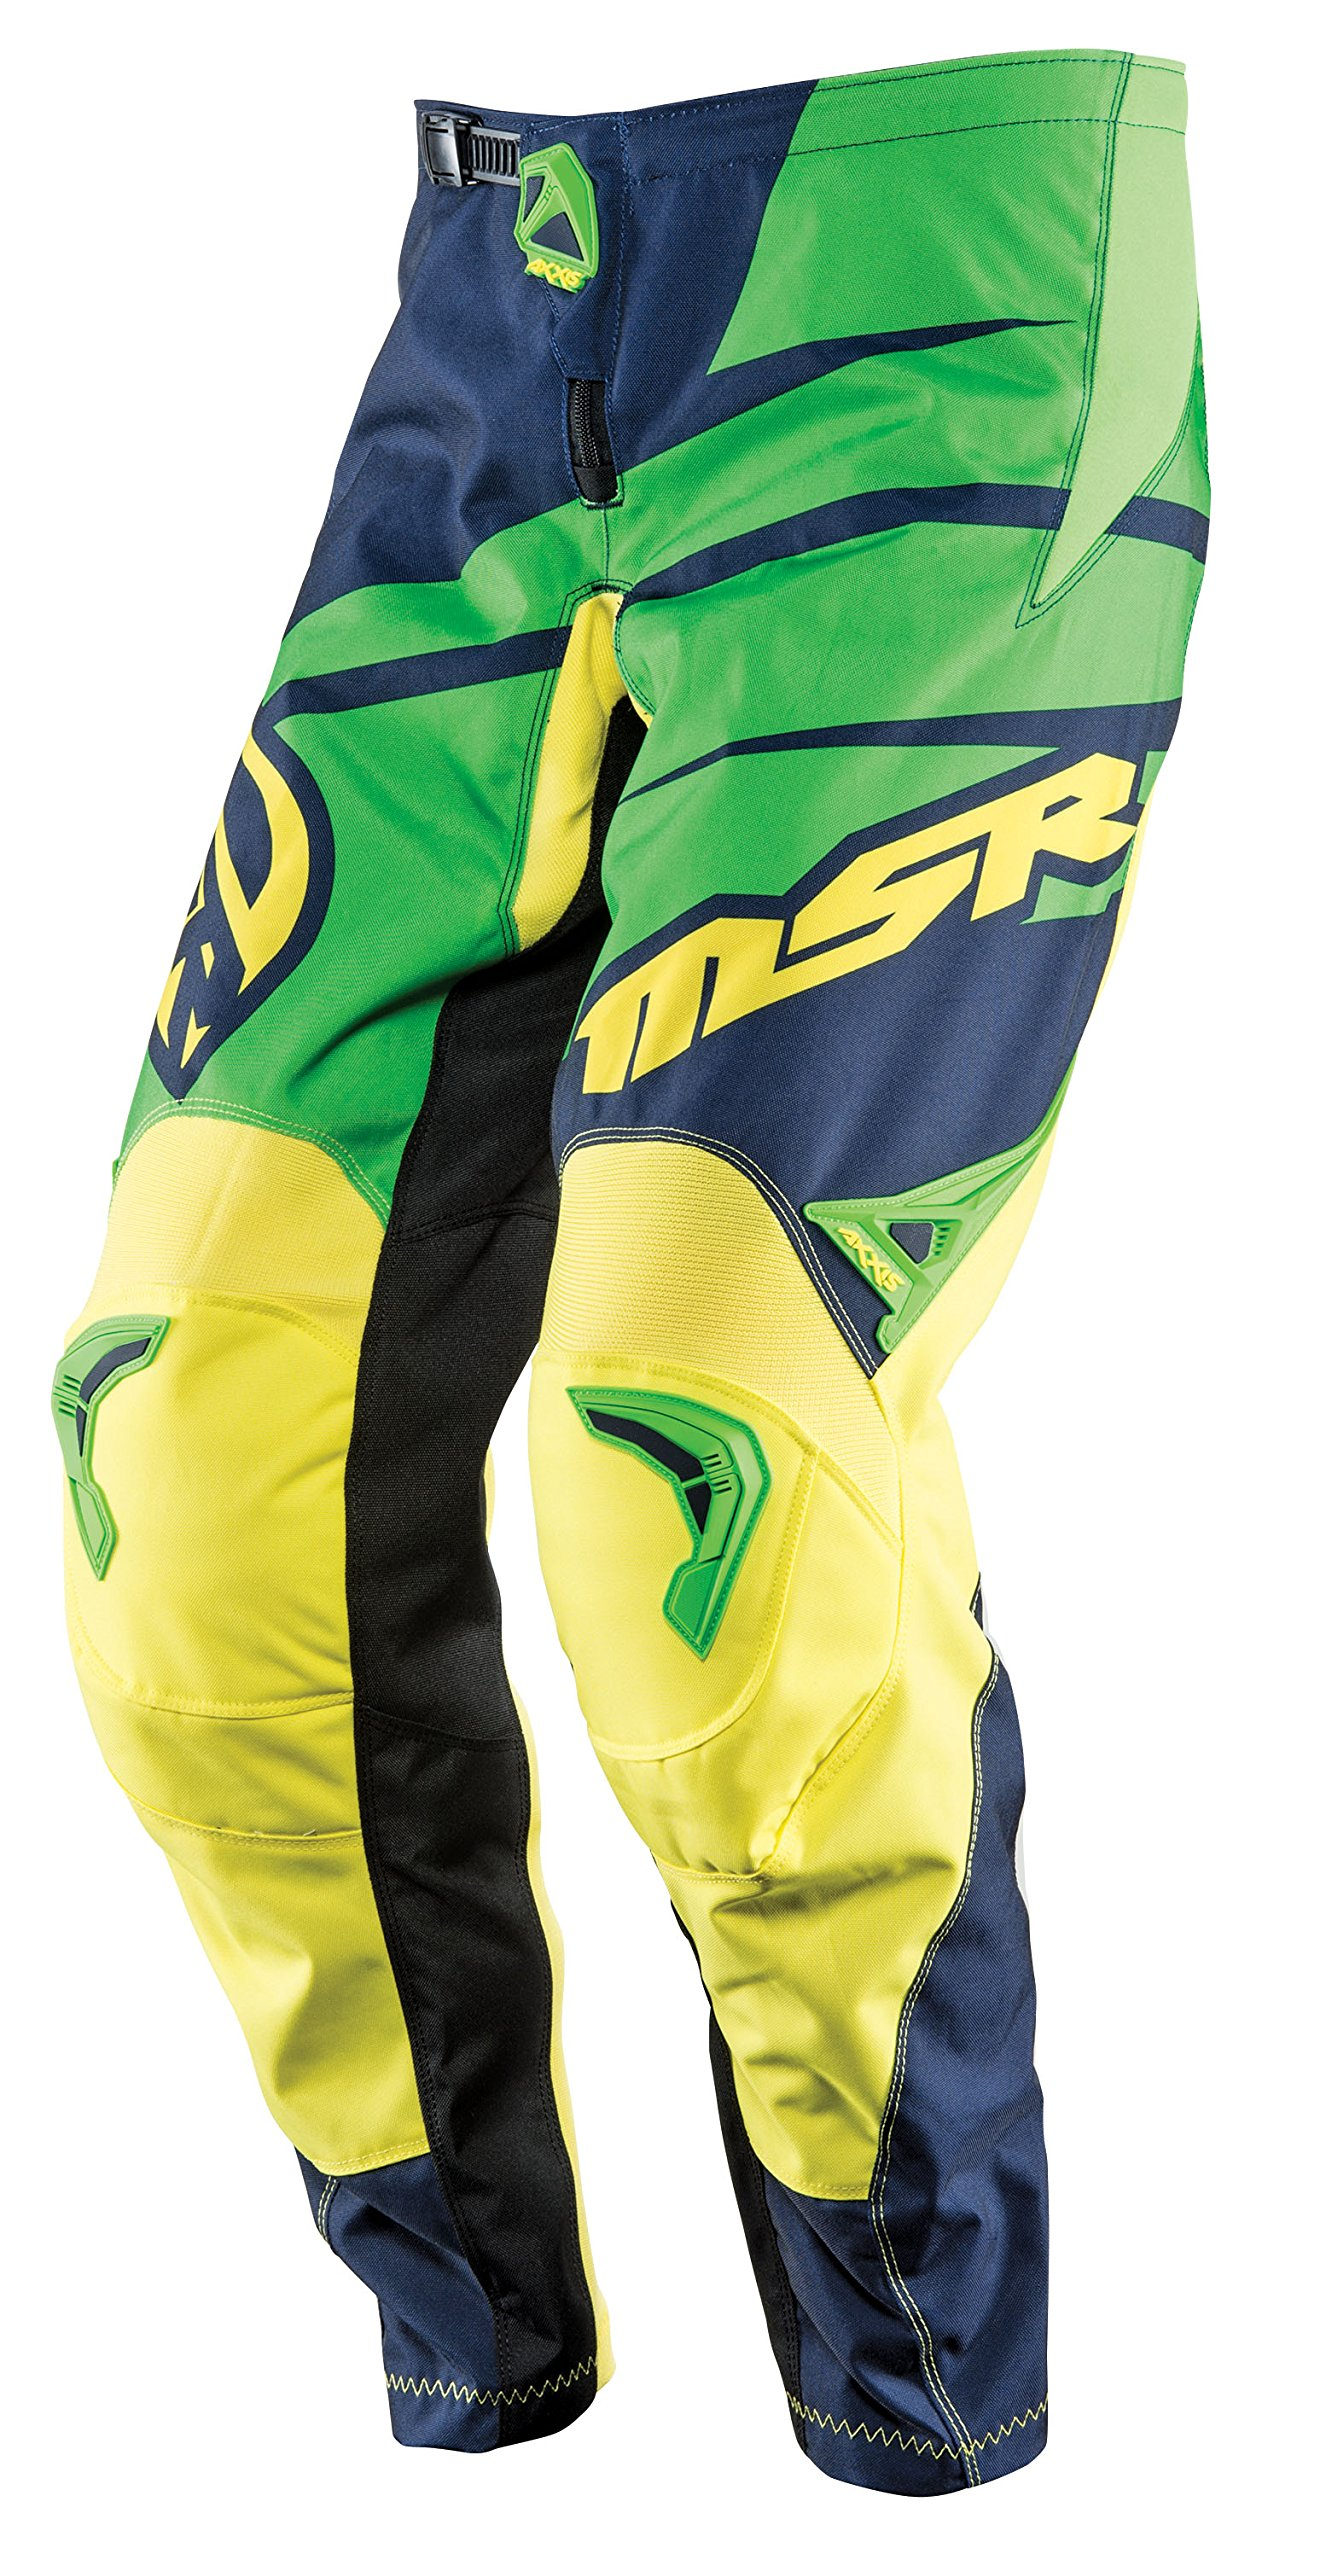 MSR M15 Axxis Pants, Gender: Mens/Unisex, Primary Color: Green, Size: 38, Distinct Name: Blue/Green/Yellow 352248